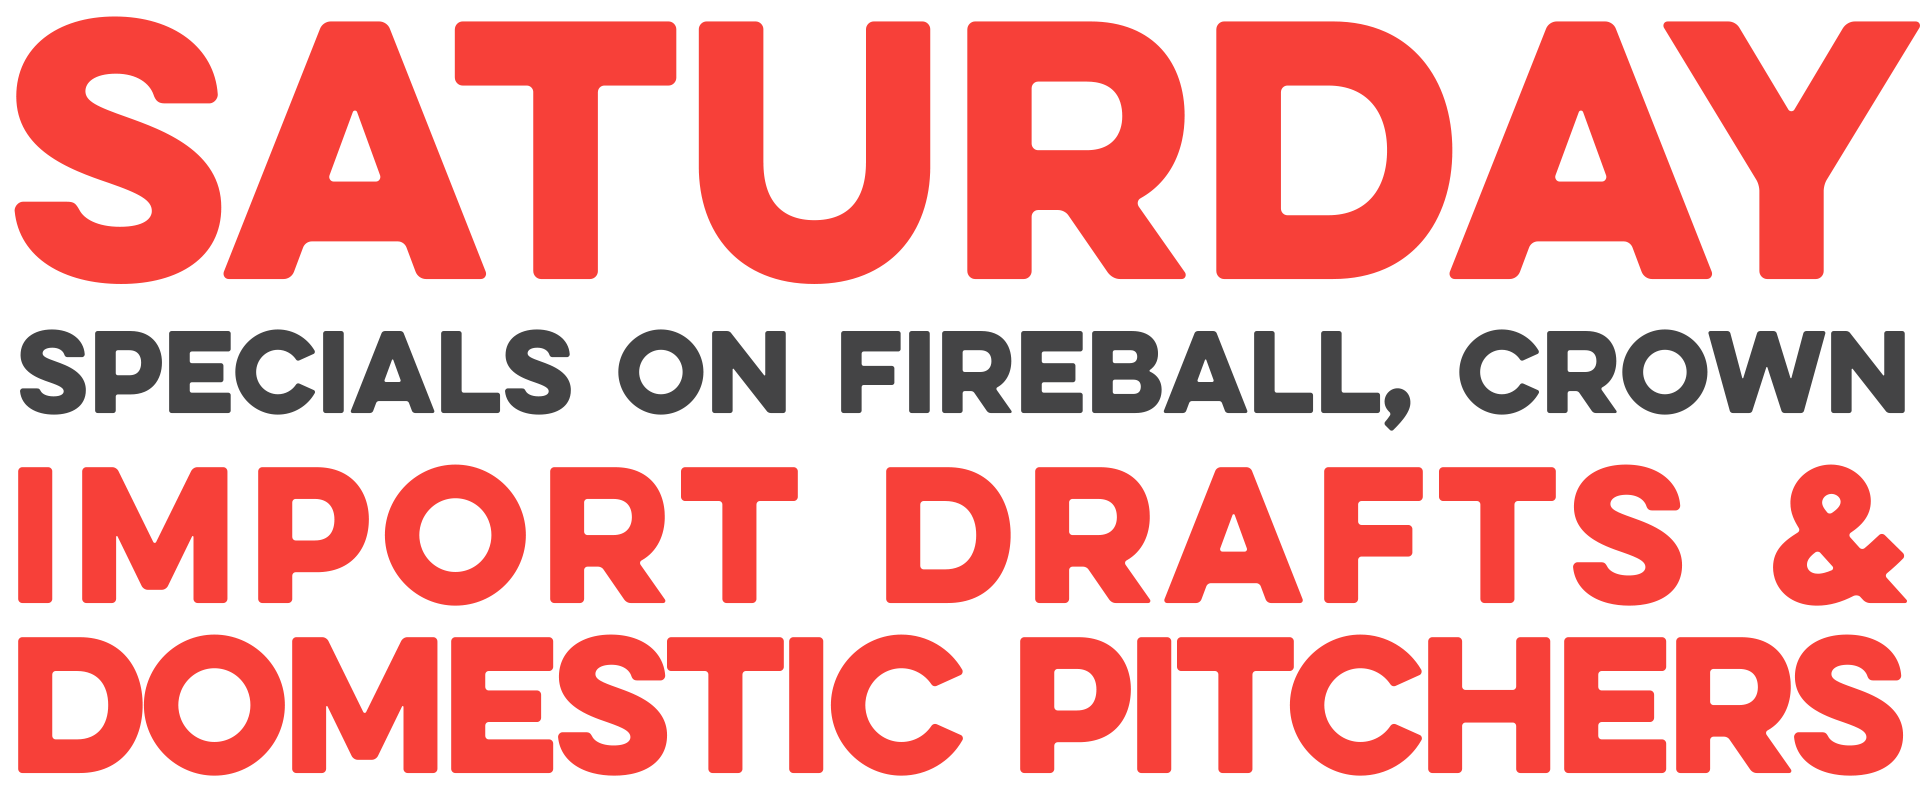 Saturday specials on fireball, crown royal, import drafts and domestic pitchers.